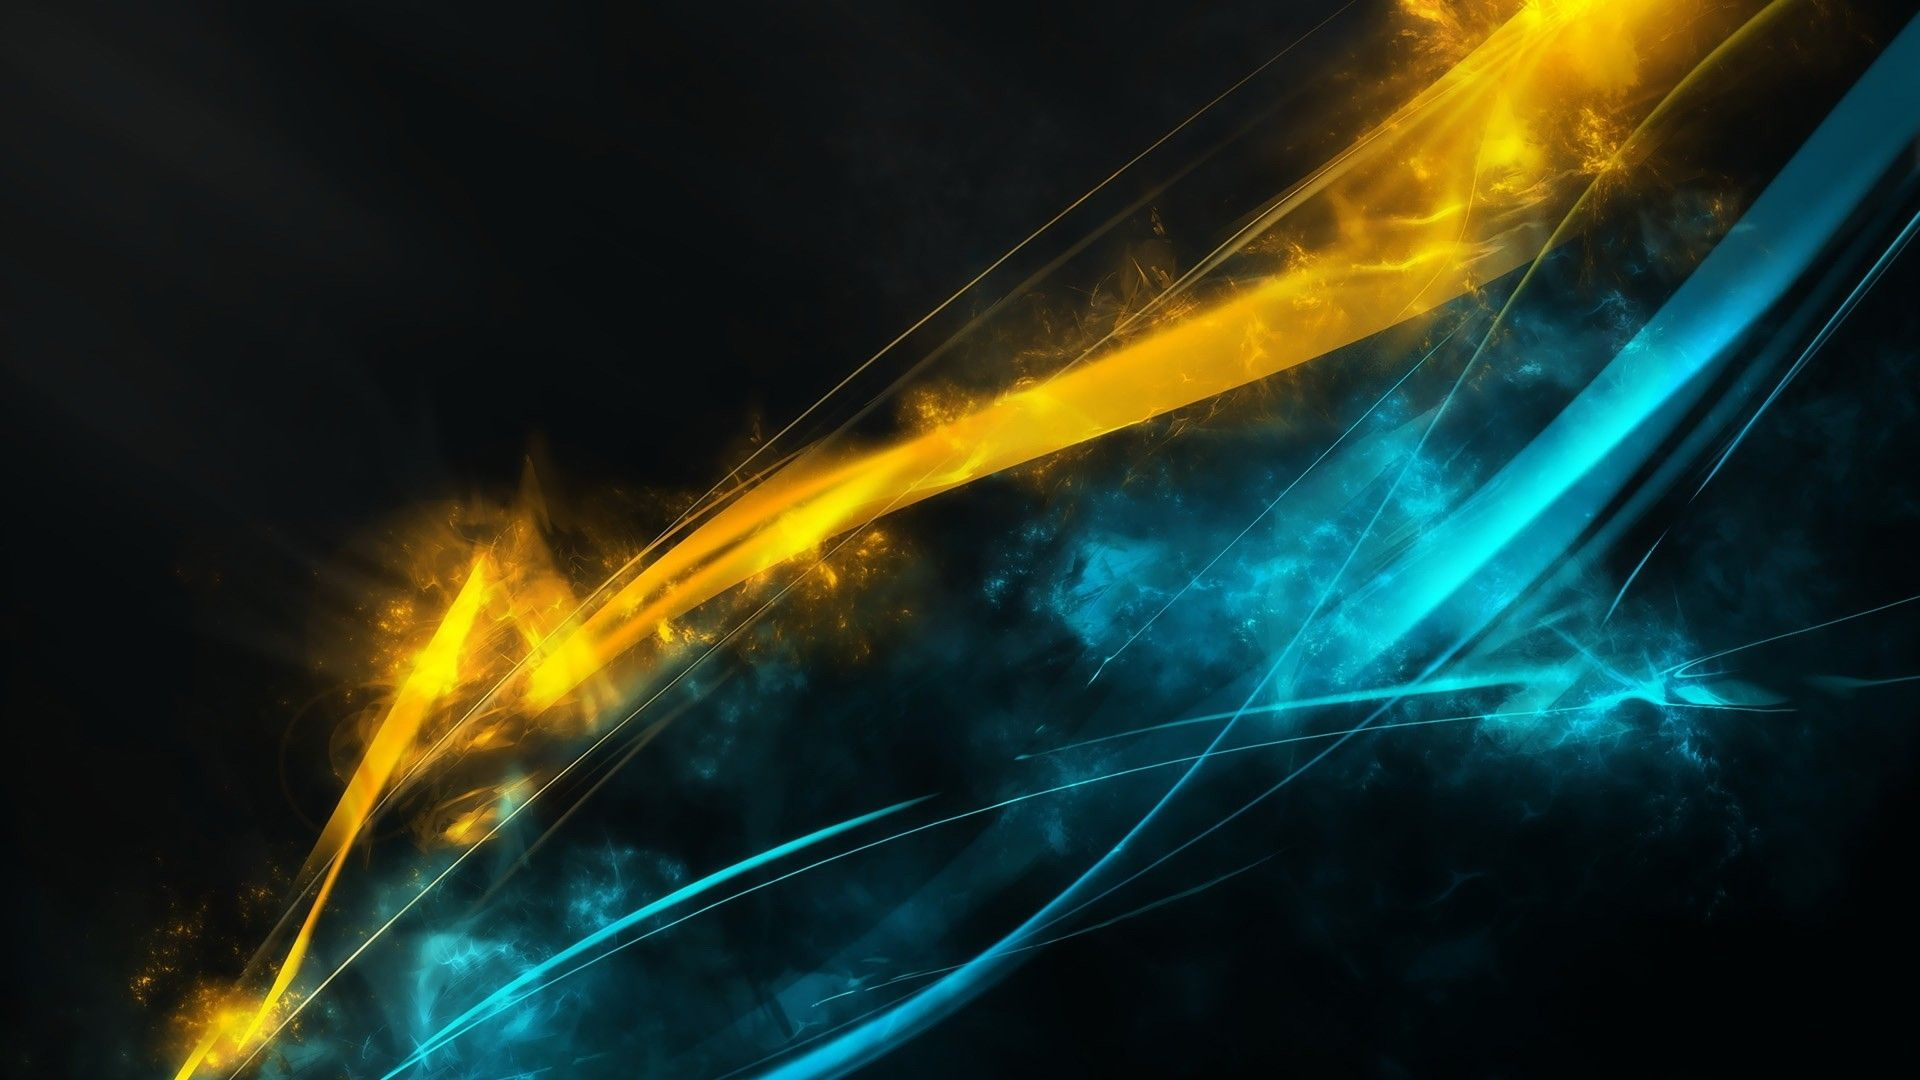 10 Latest Abstract Wallpaper 1920X1080 Hd FULL HD 1080p